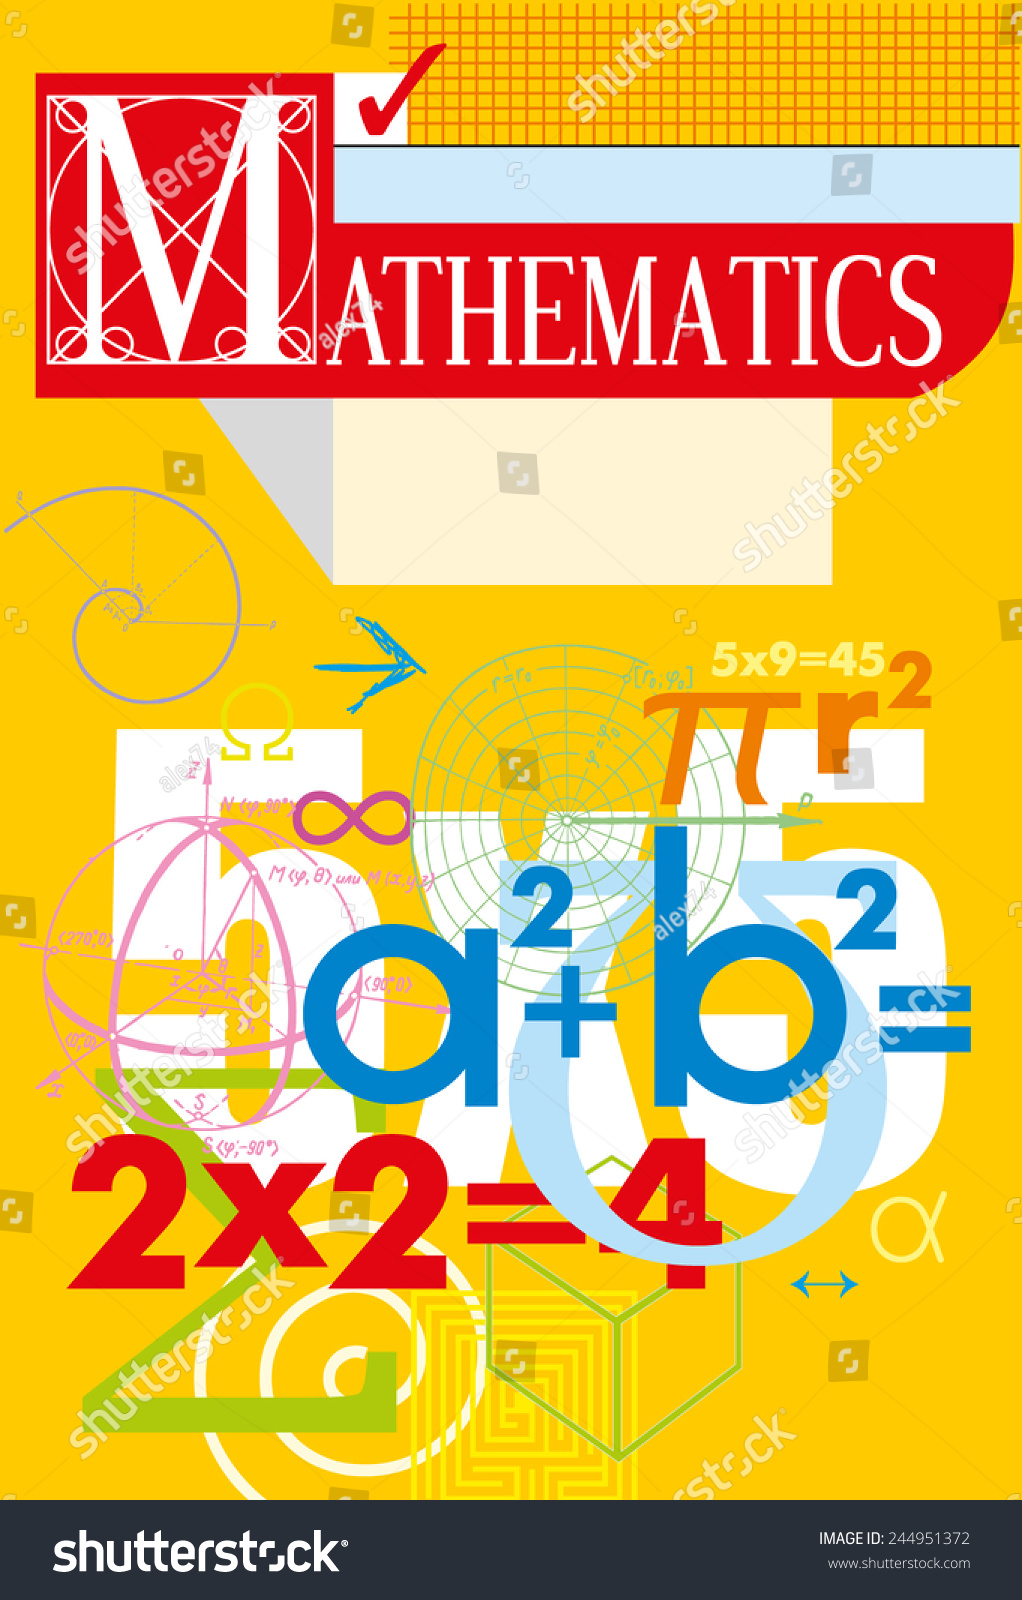 math in graphic design essay Keywords: graphic design modernism, postmodernism graphic design throughout the 19th century artists and painters had a very conservative mindset when it came to the presentation of art the images and art forms that were made during this time were composed of a certain artistic mold which reflected conservative moral values.